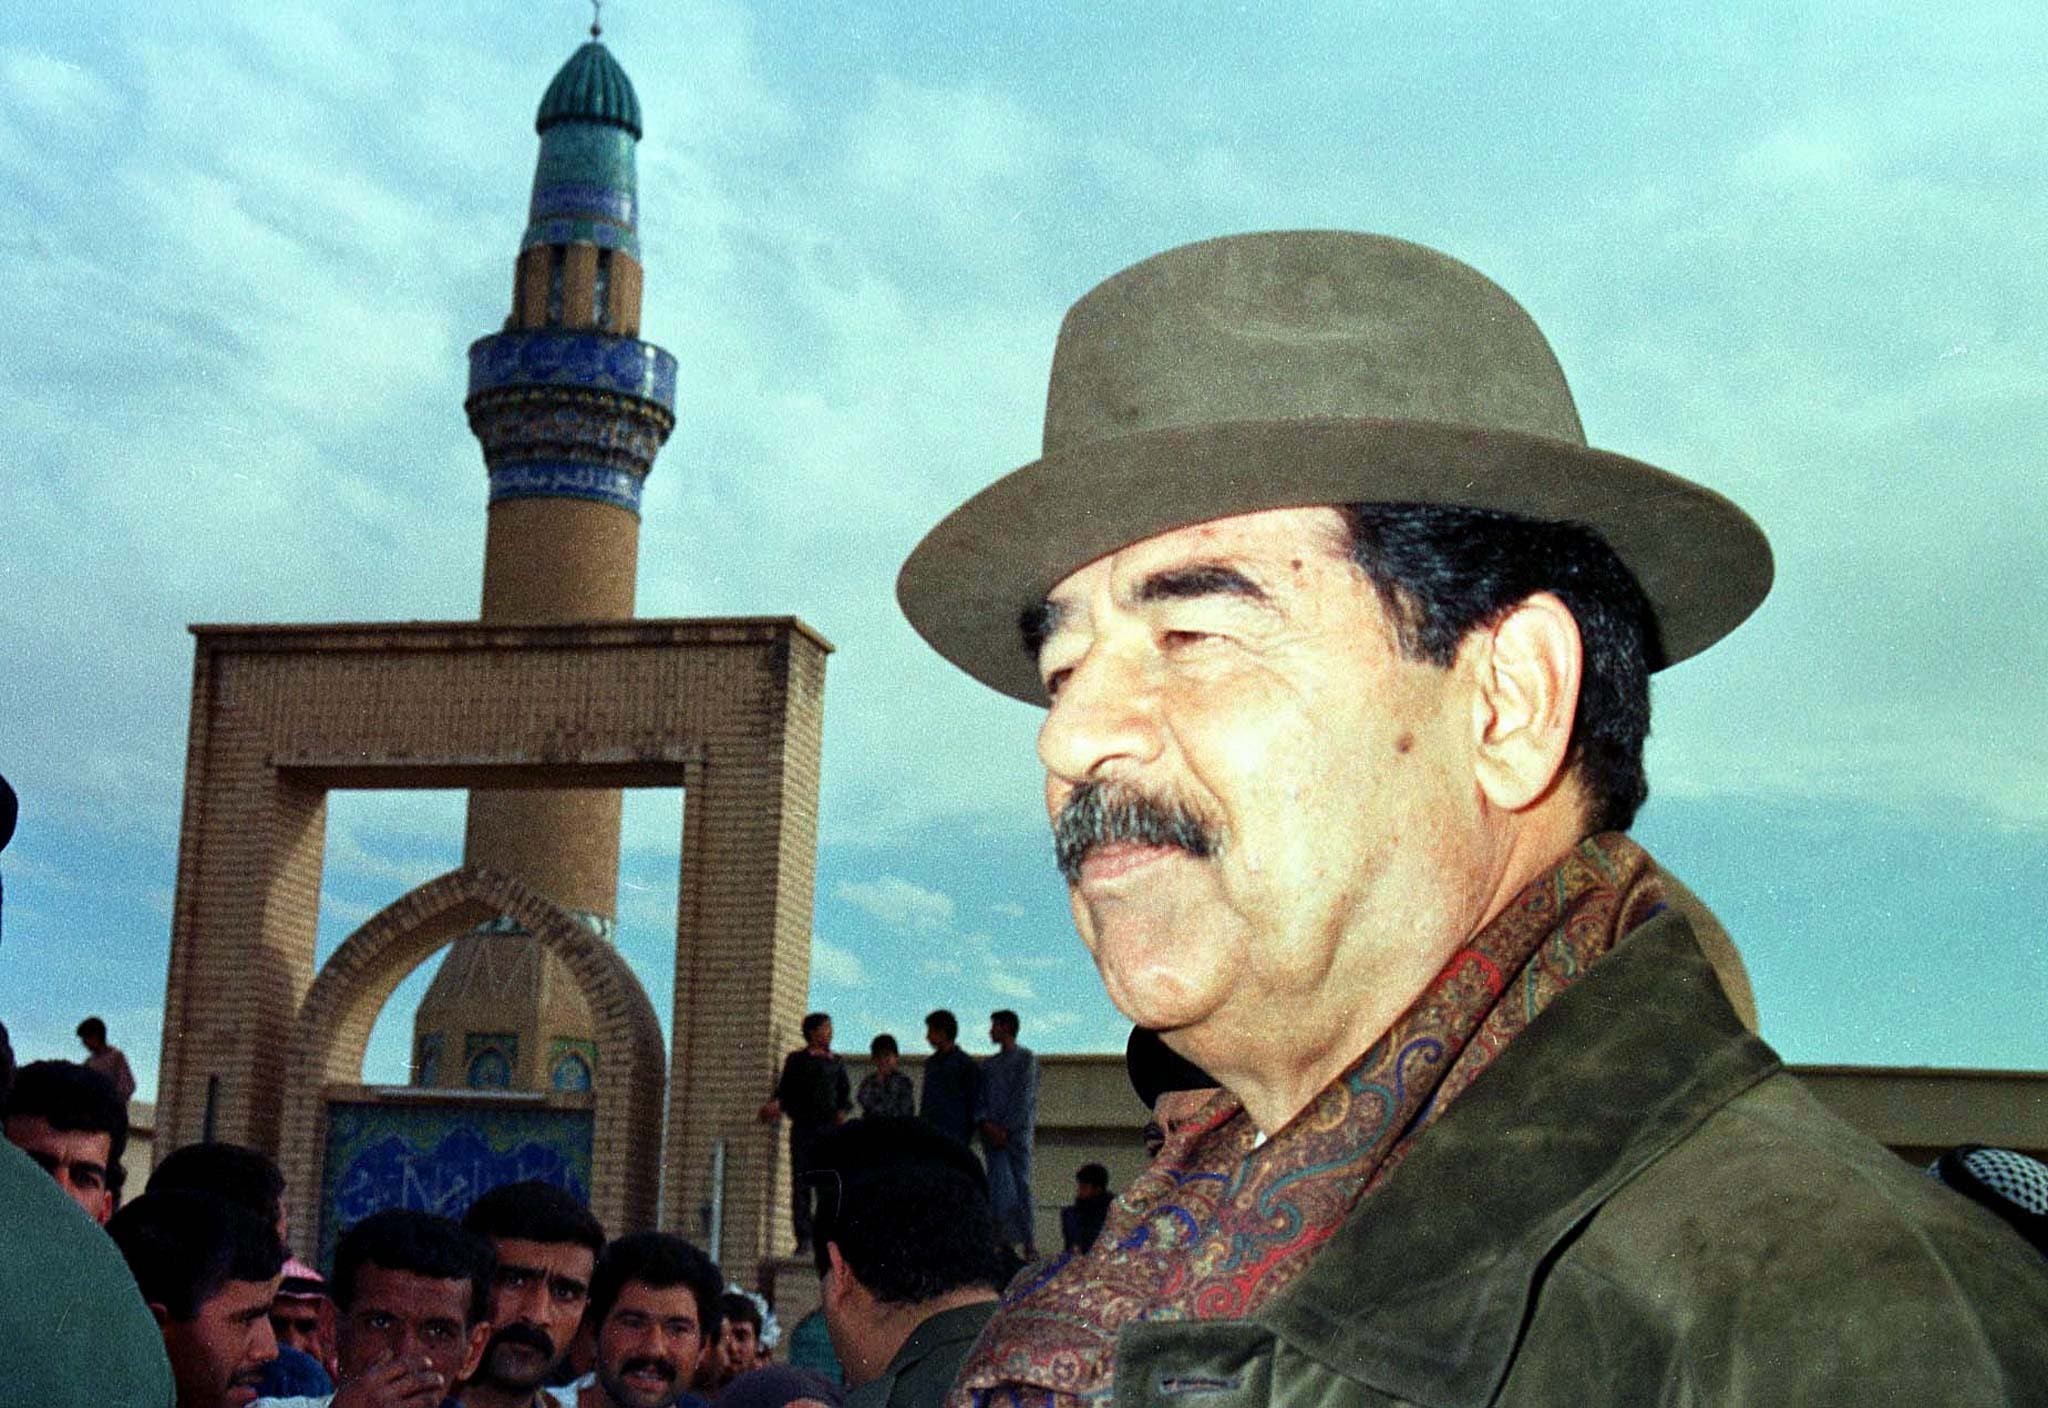 Iraqi President Saddam Hussein greets people of the village of al-Budoor, 180 km (110 miles) from Baghdad, March 29. Saddam regaled villagers with daring tales from his youth while U.N. weapons inspectors scoured his hometown palace. (Reuters)